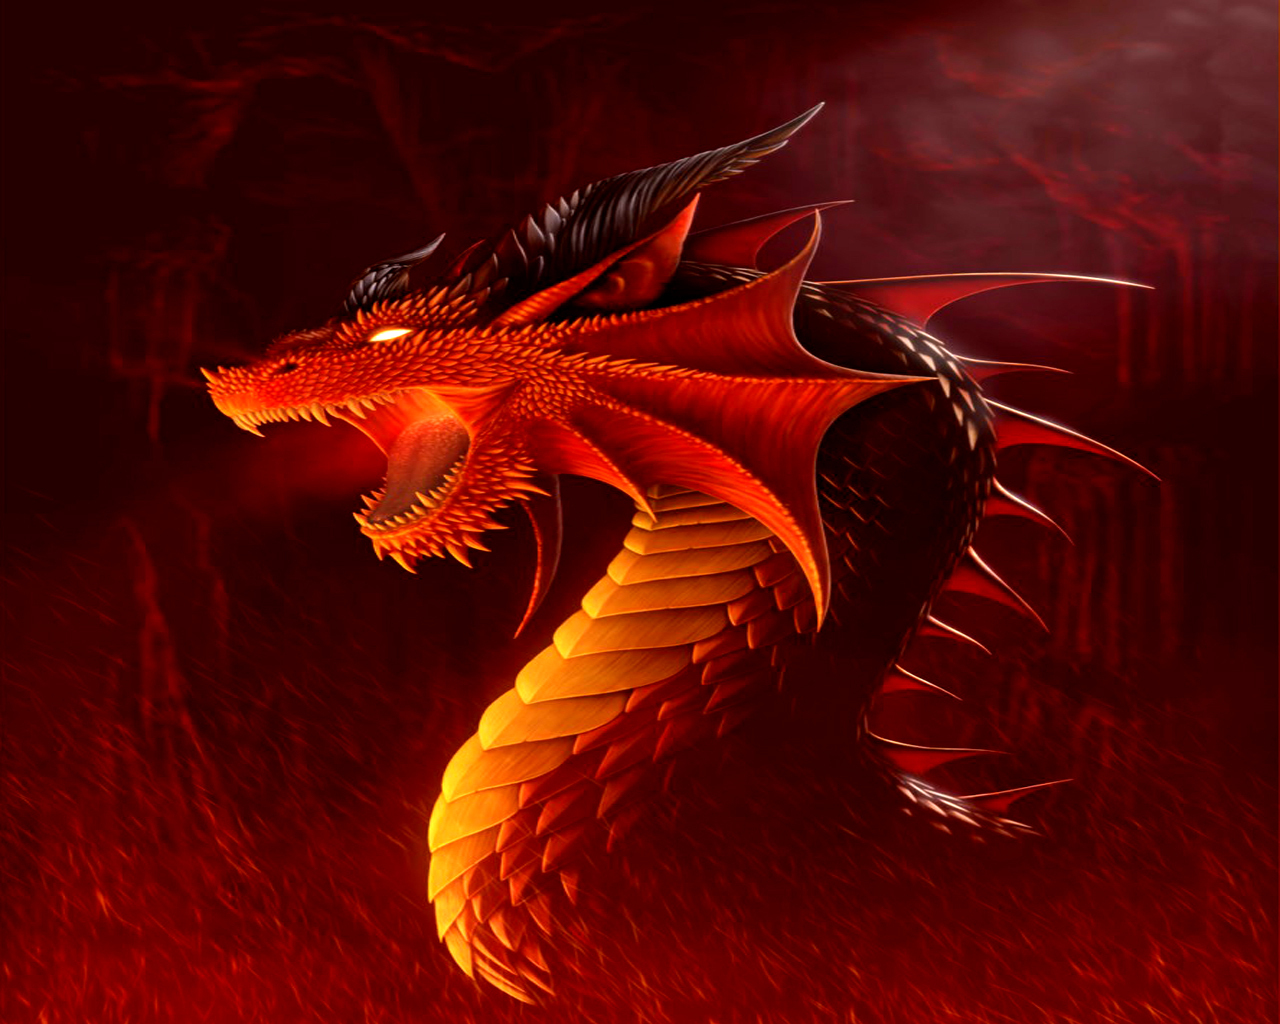 Desktop Backgrounds 4U Fantasy Dragons 1280x1024